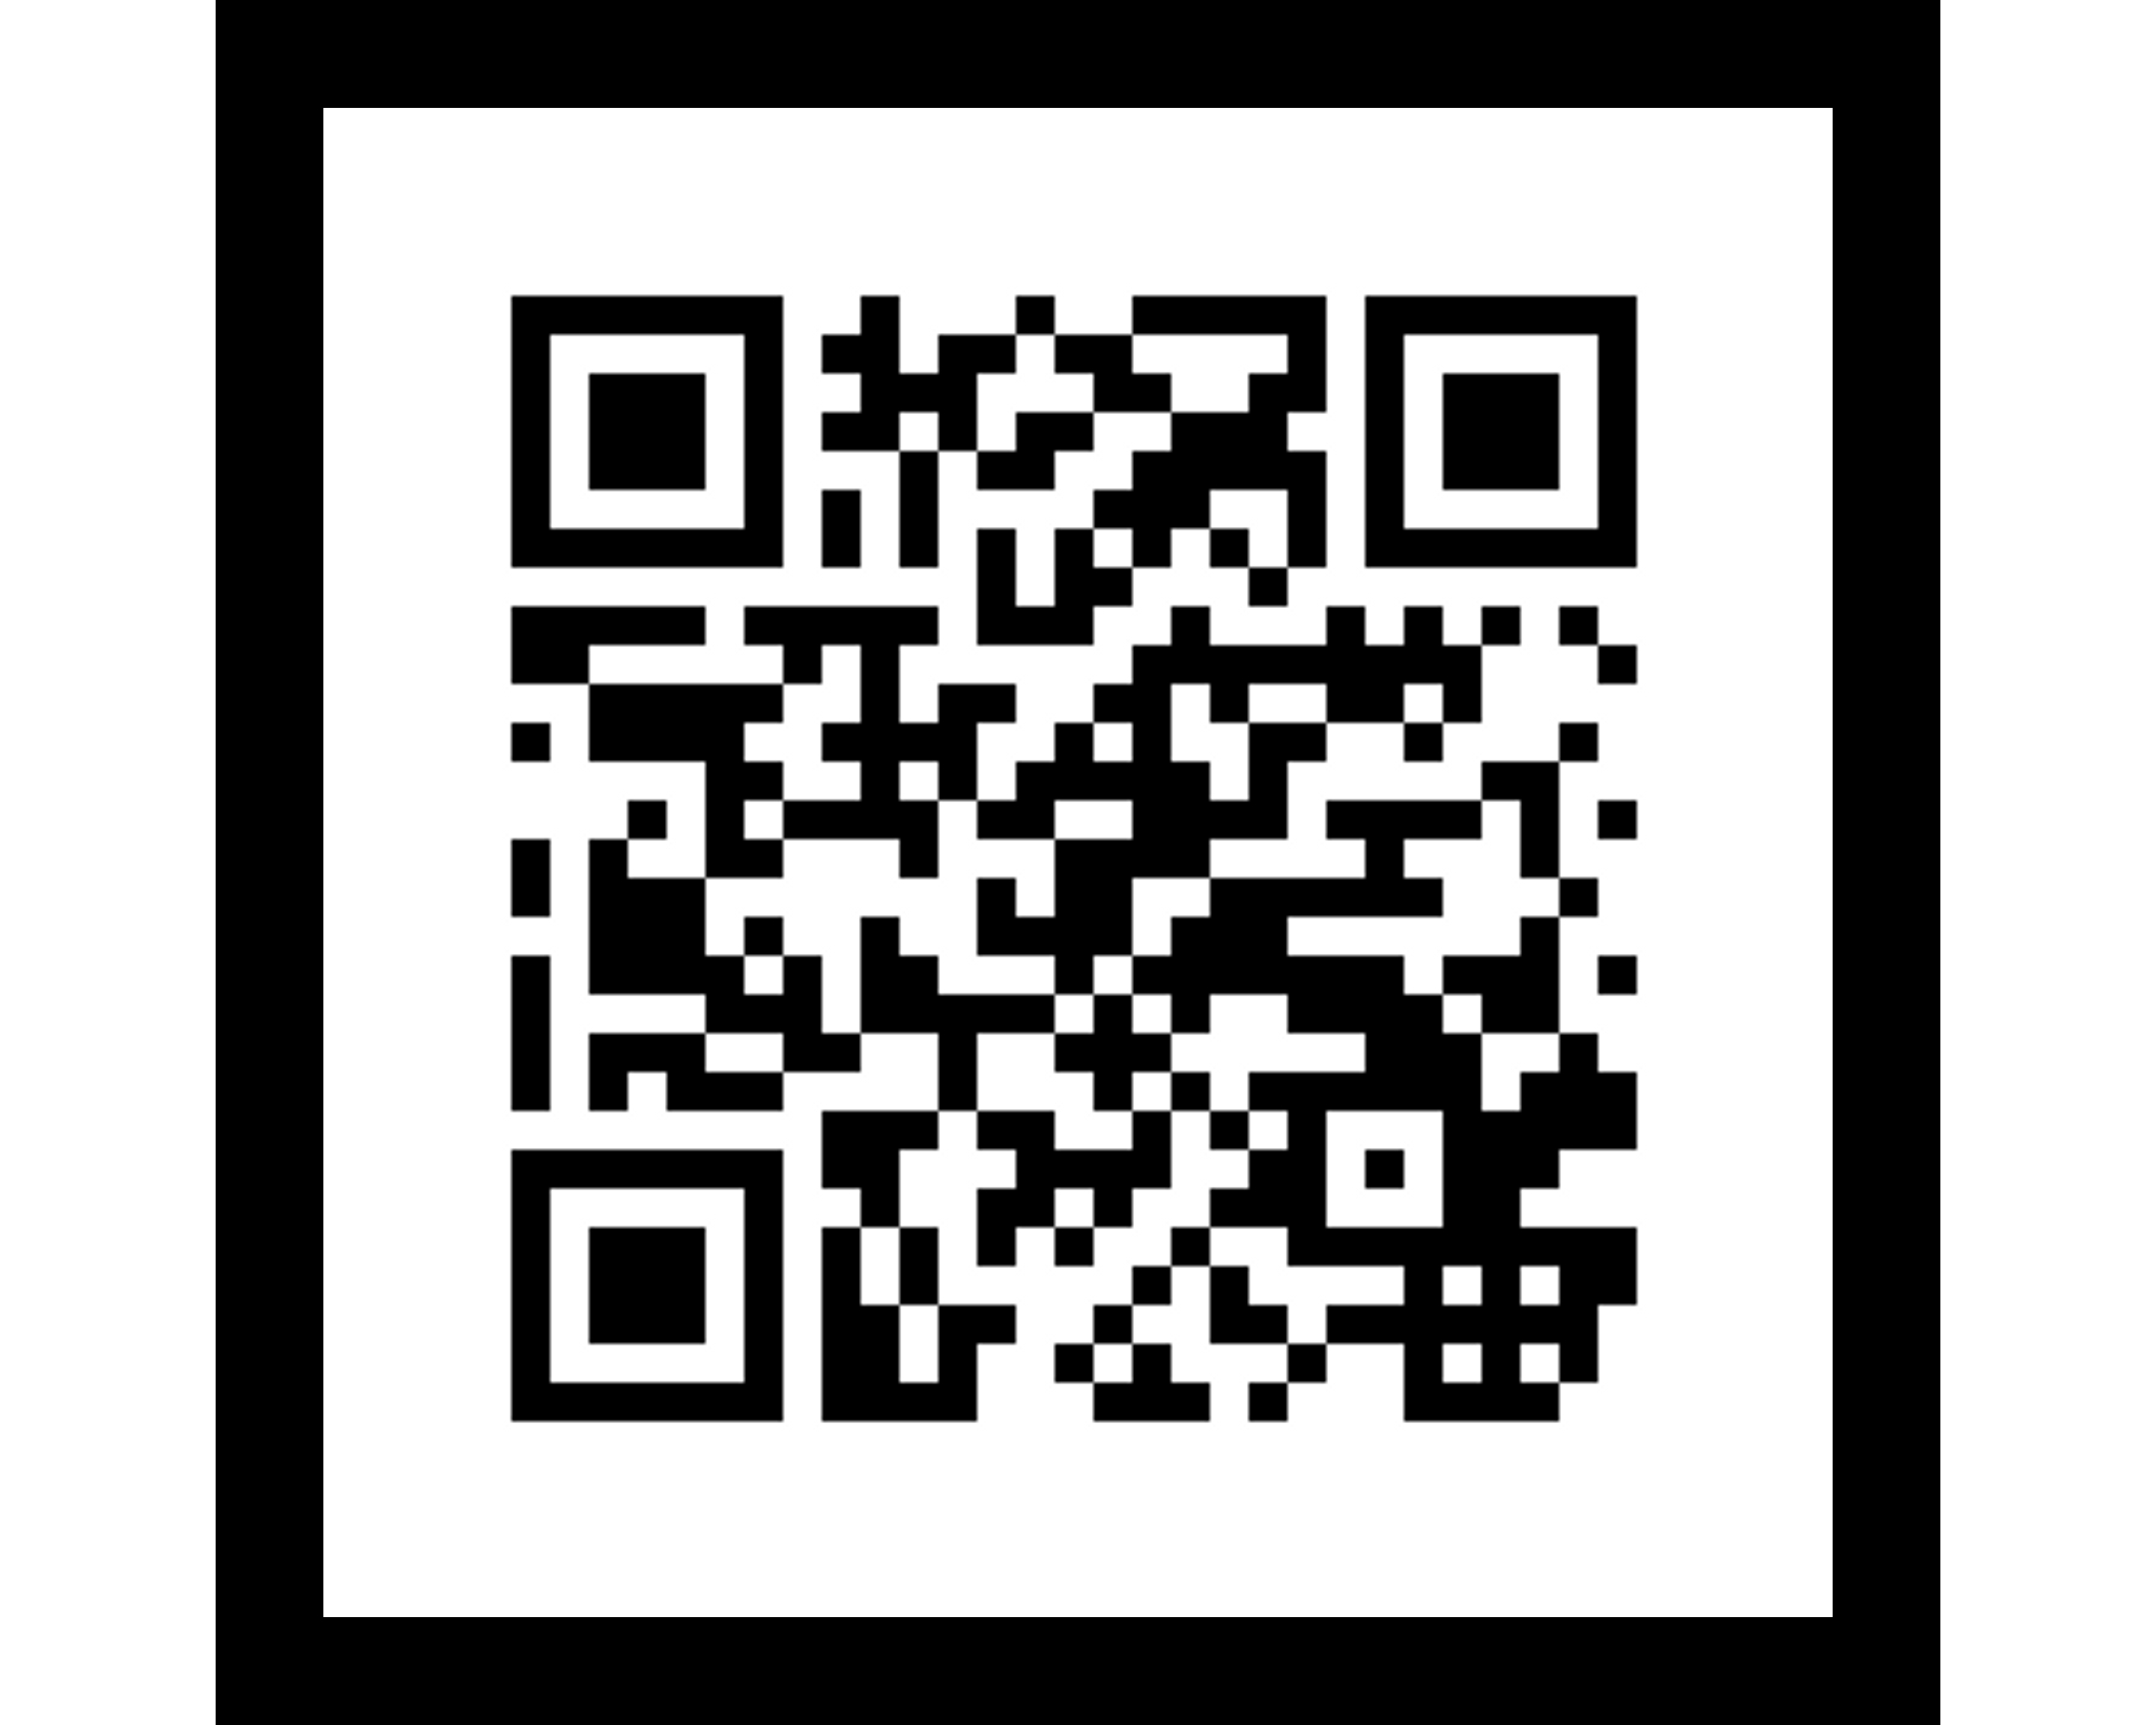 QR Codes are Everywhere - Convertible Solutions